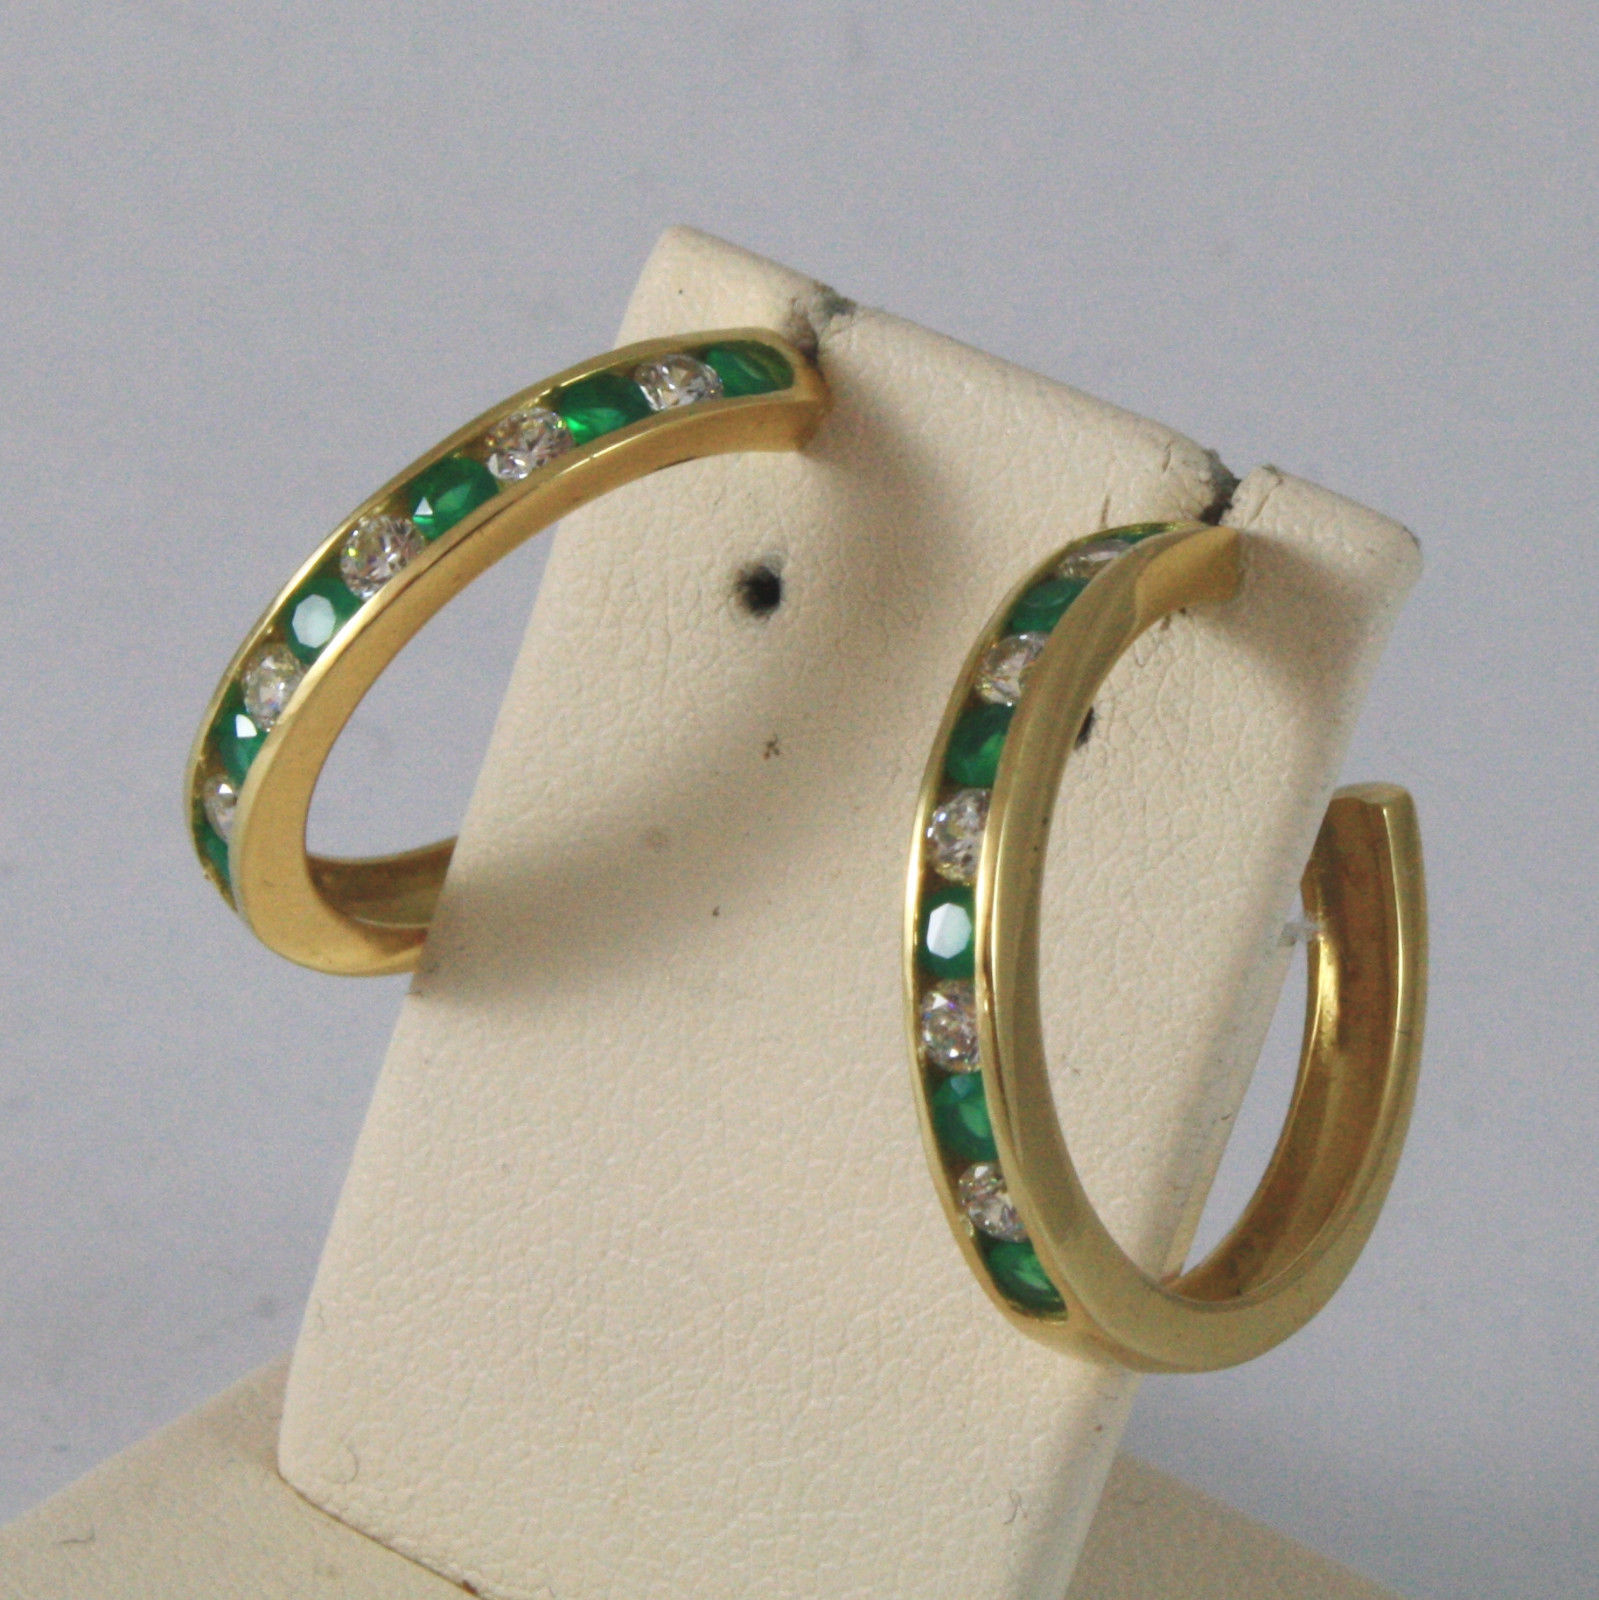 SOLID 18KT. YELLOW GOLD CIRCLE EARRINGS WITH ZIRCONIA AND GREEN TOURMALINES